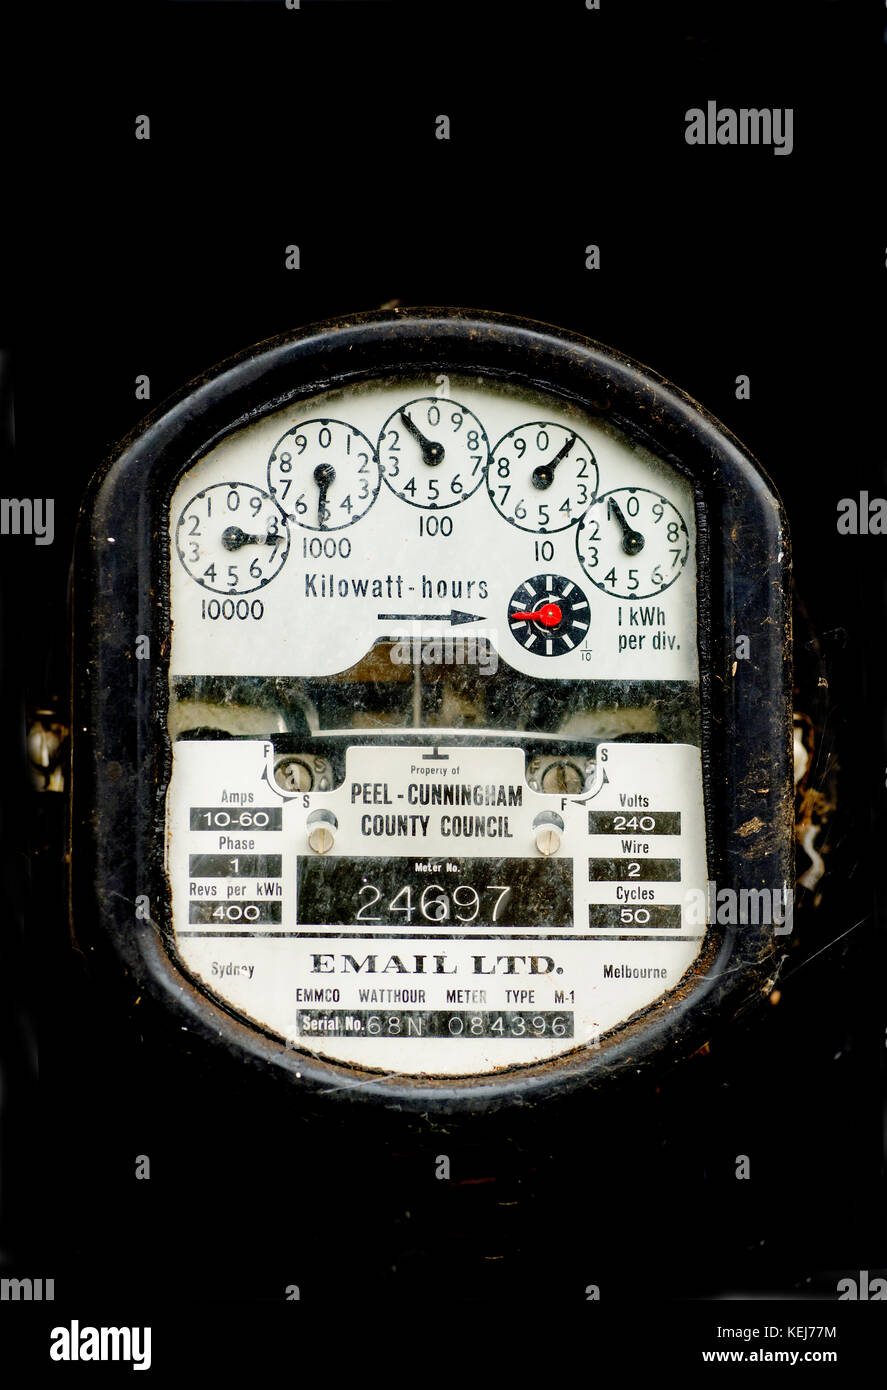 An older single phase 240 volt Australian electricity usage meter manufactured by Email  Ltd at a domestic home. Stock Photo